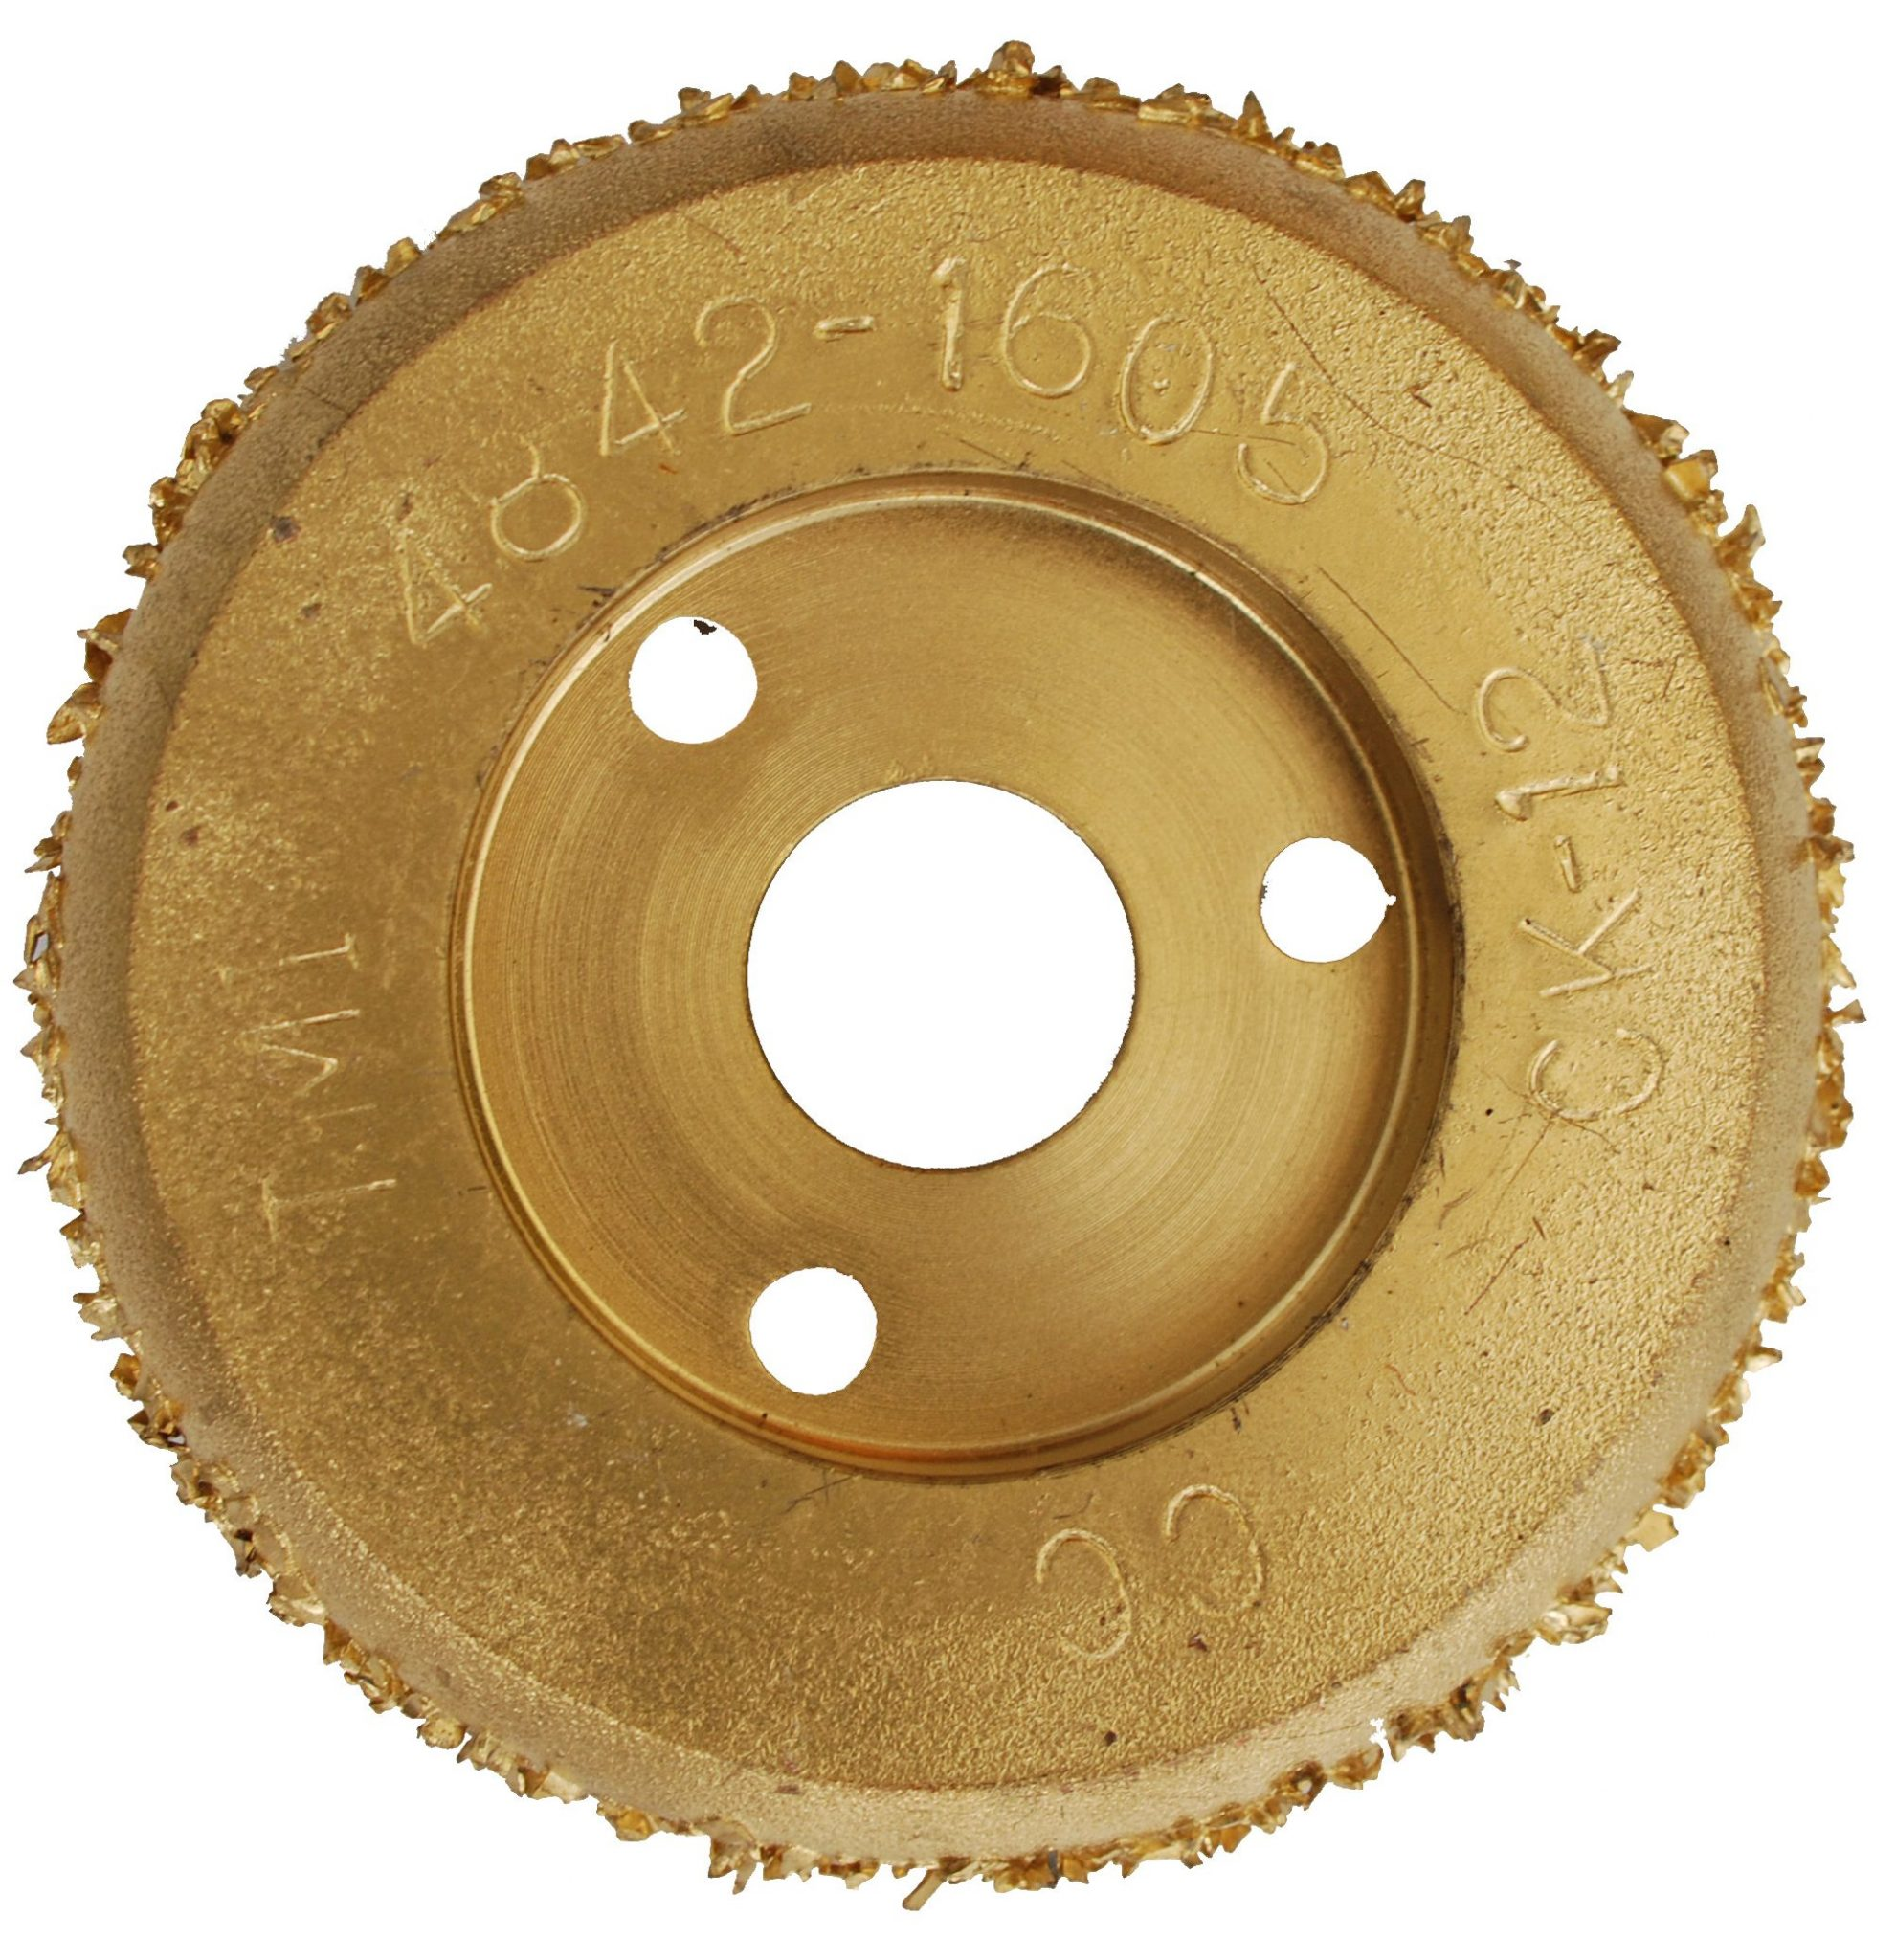 6 in new steel carbide grit buy wheels online